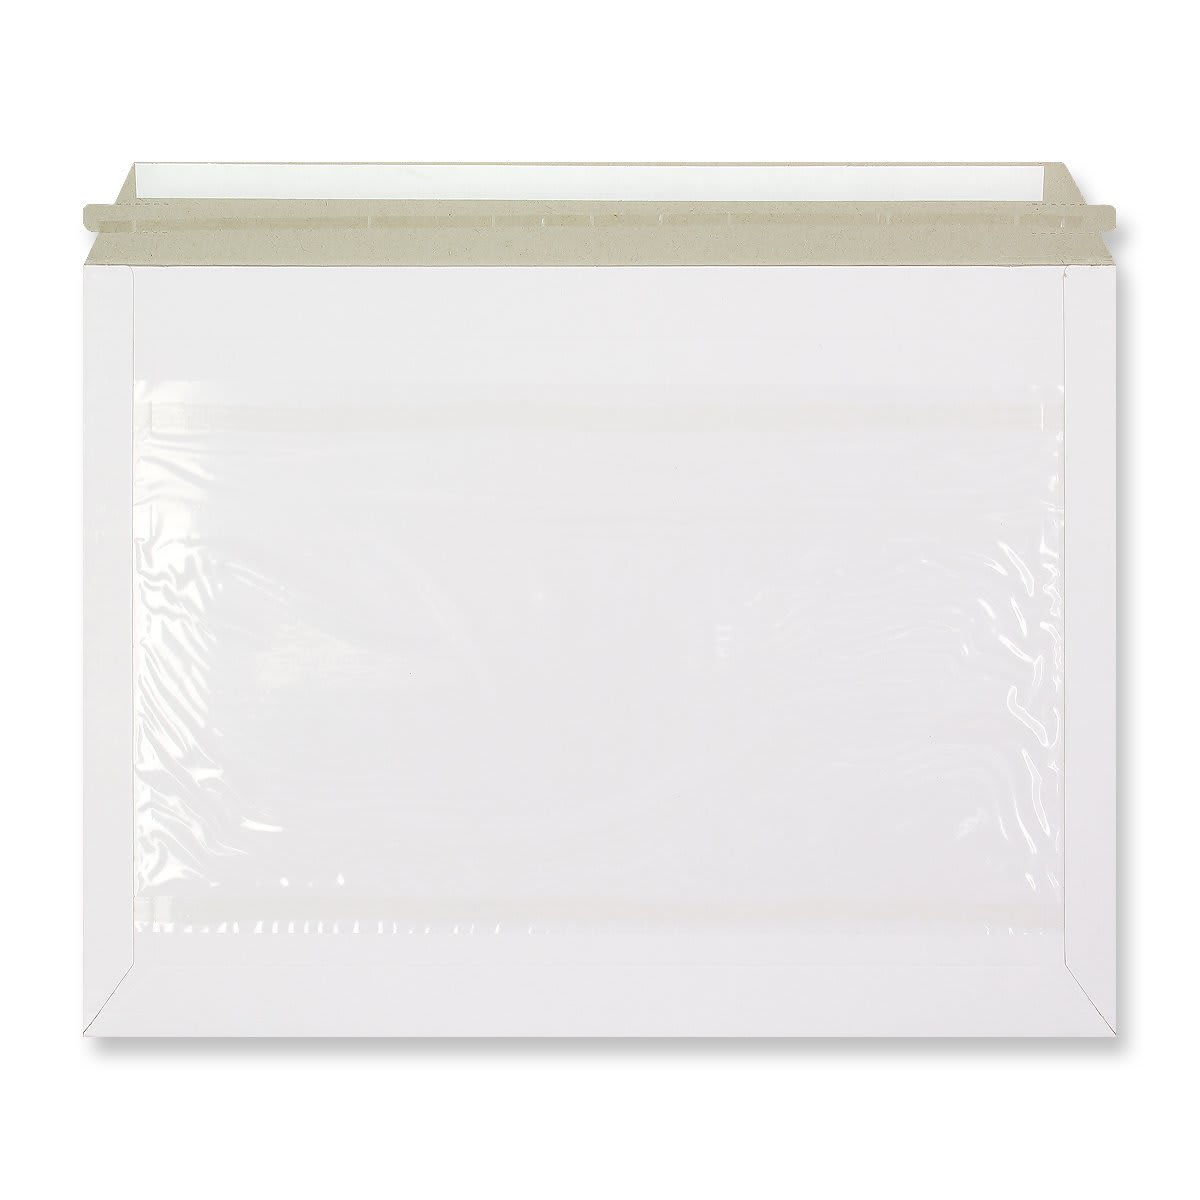 266 x 353mm COURIER ALL BOARD ENVELOPES WITH BULKING CREASES & DOCUMENT WALLET